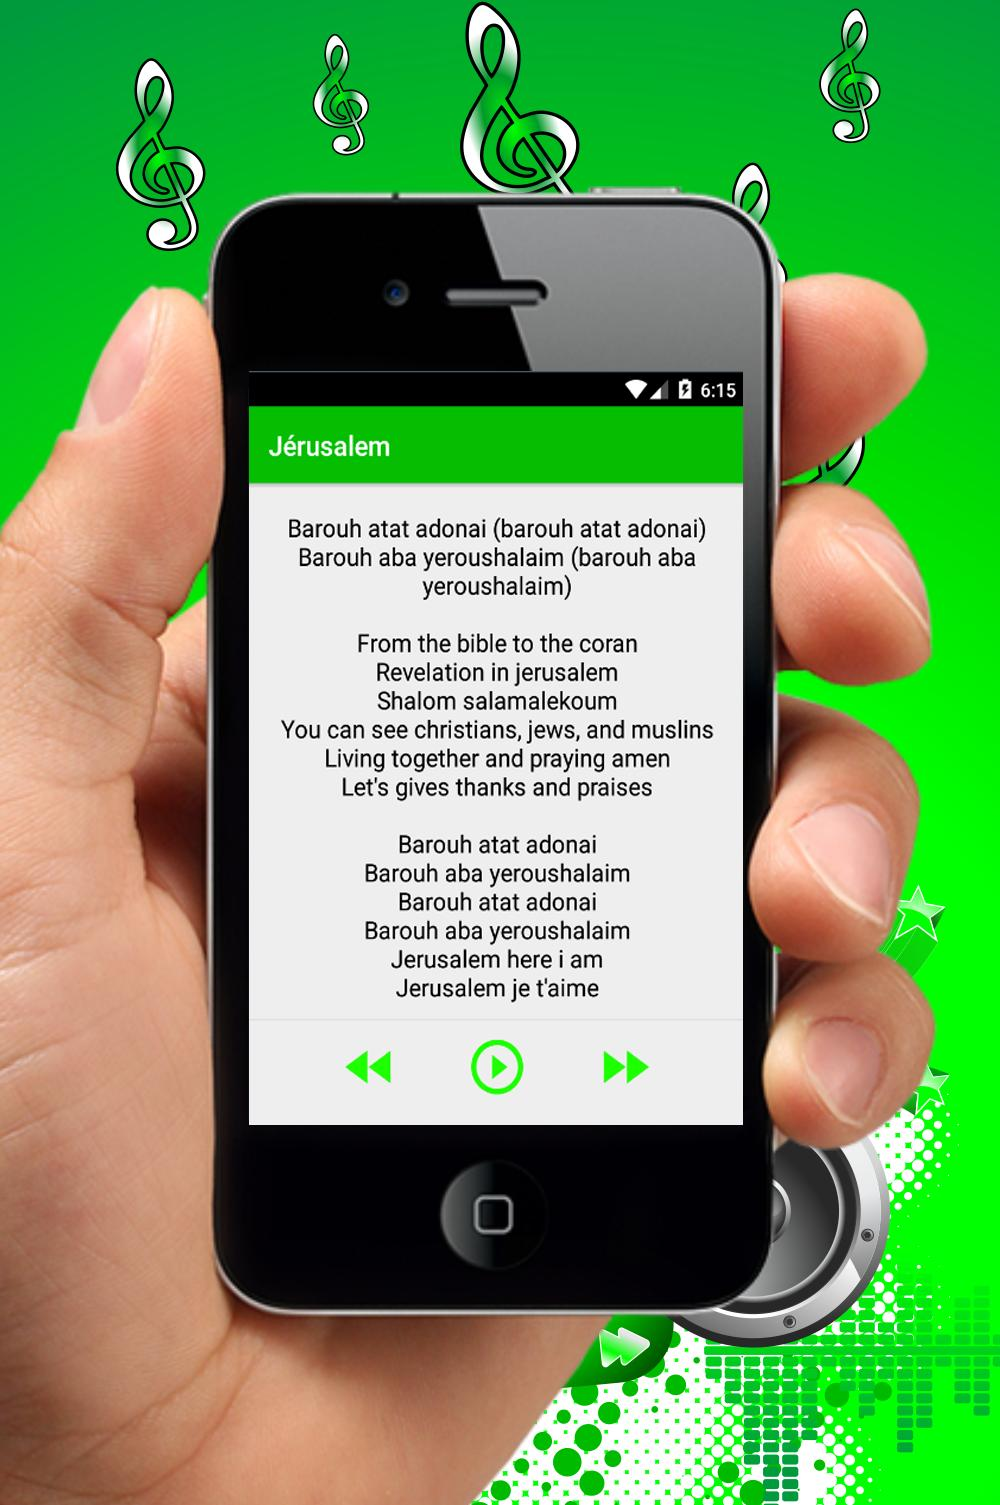 Alpha Blondy All Songs Lyrics For Android Apk Download